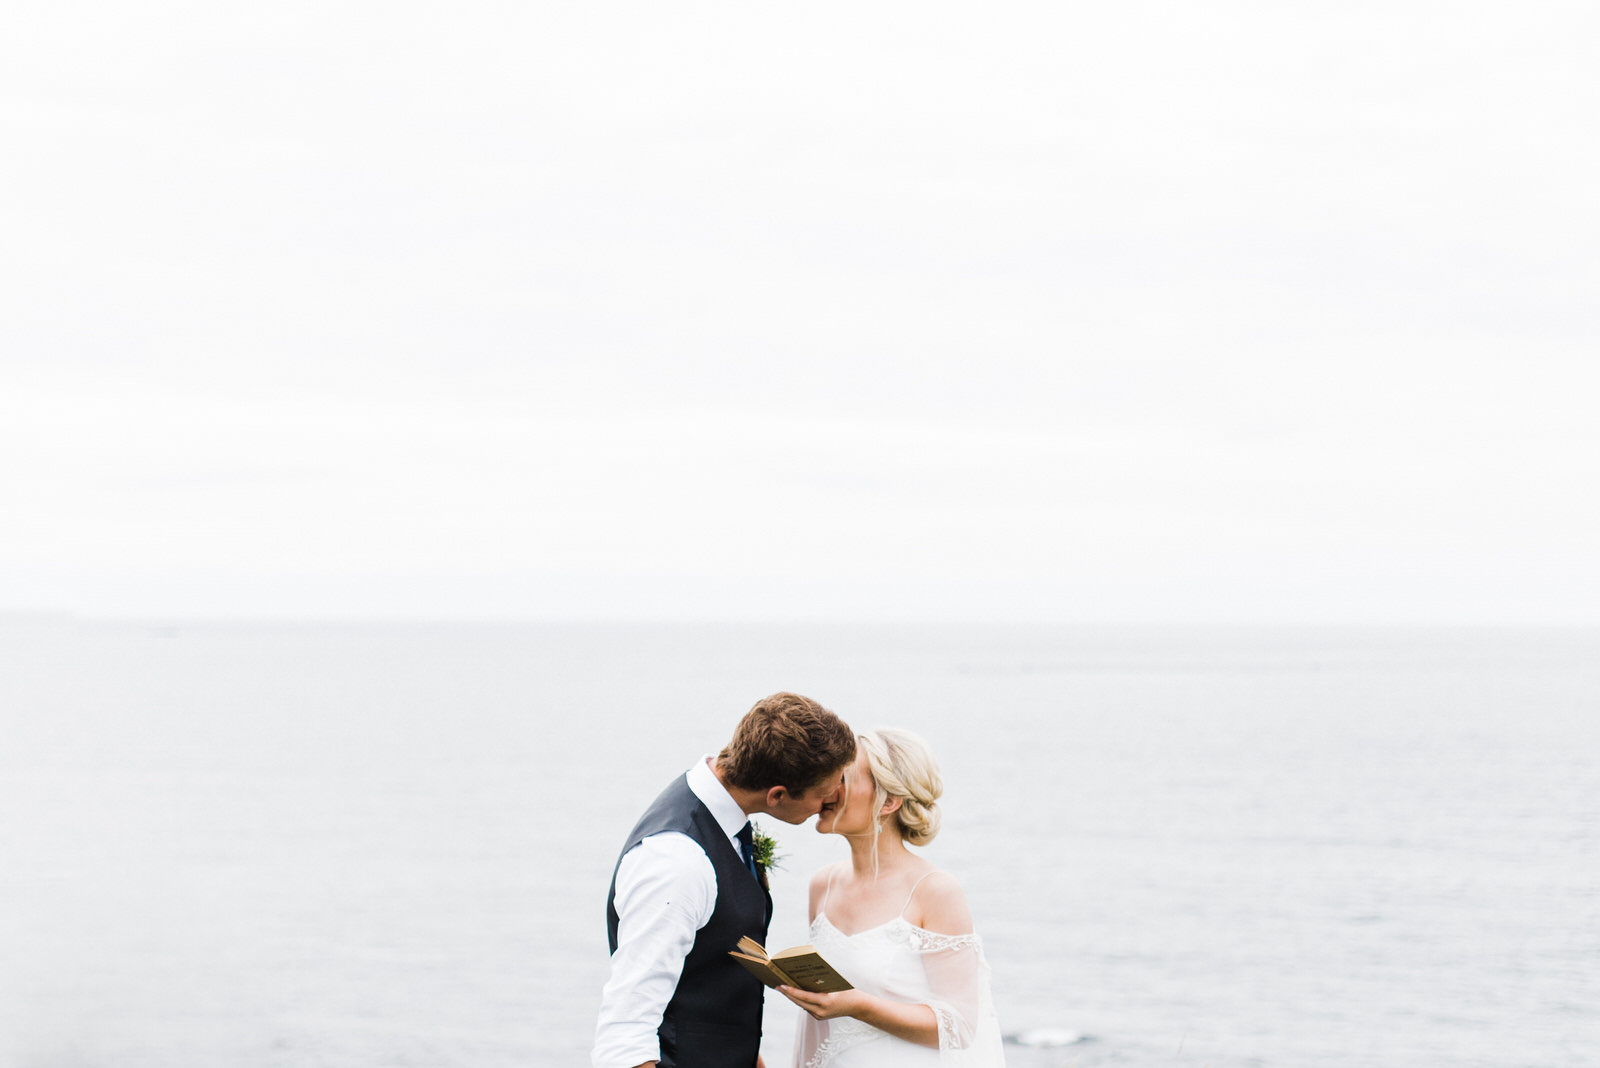 dunluce castle elopement in ireland in sage and white (26)-1.jpg